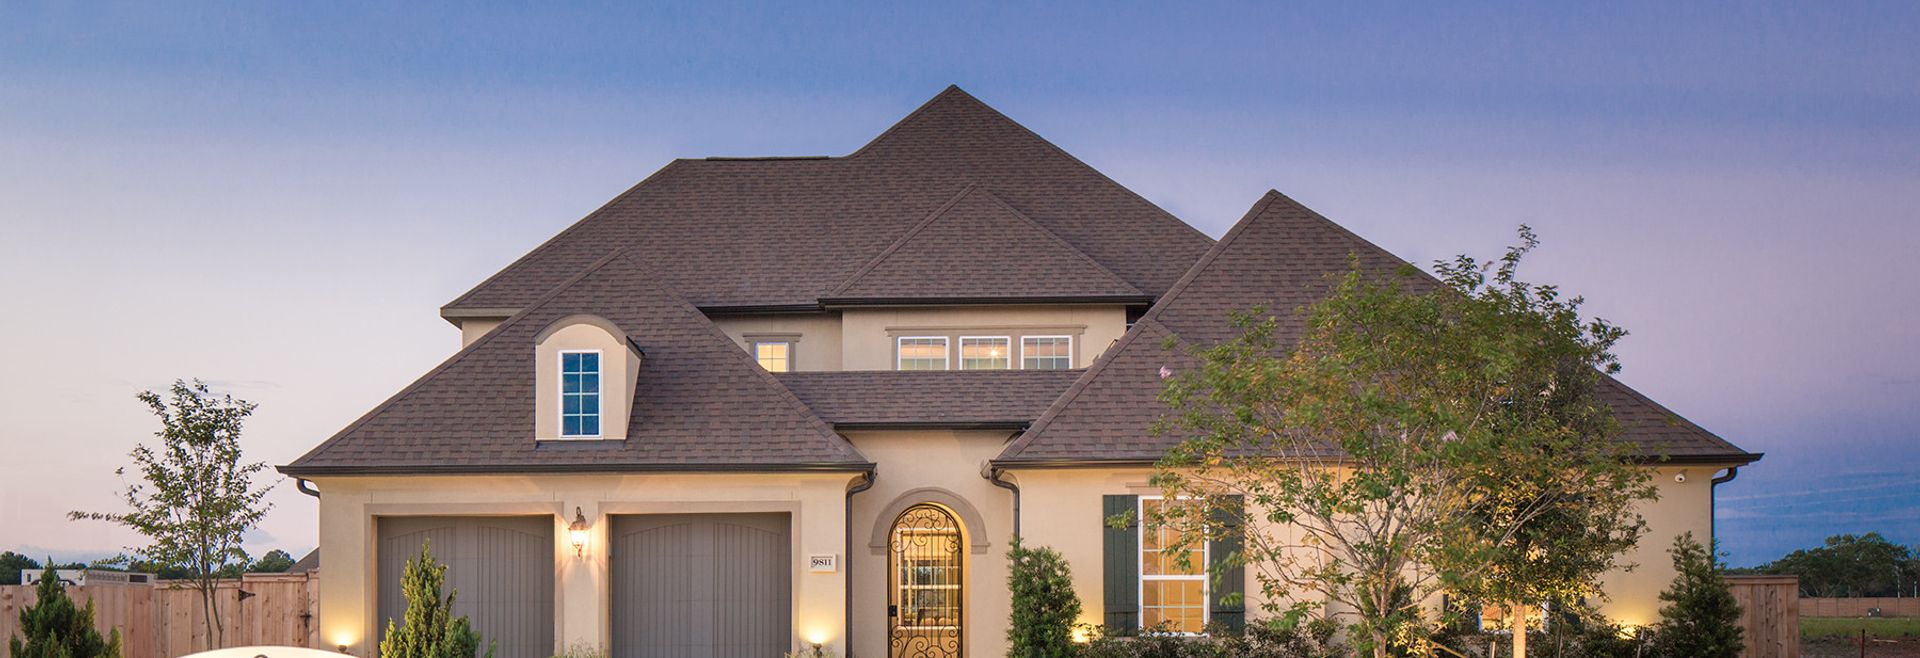 Meridiana by Shea Homes in Iowa Colony, TX